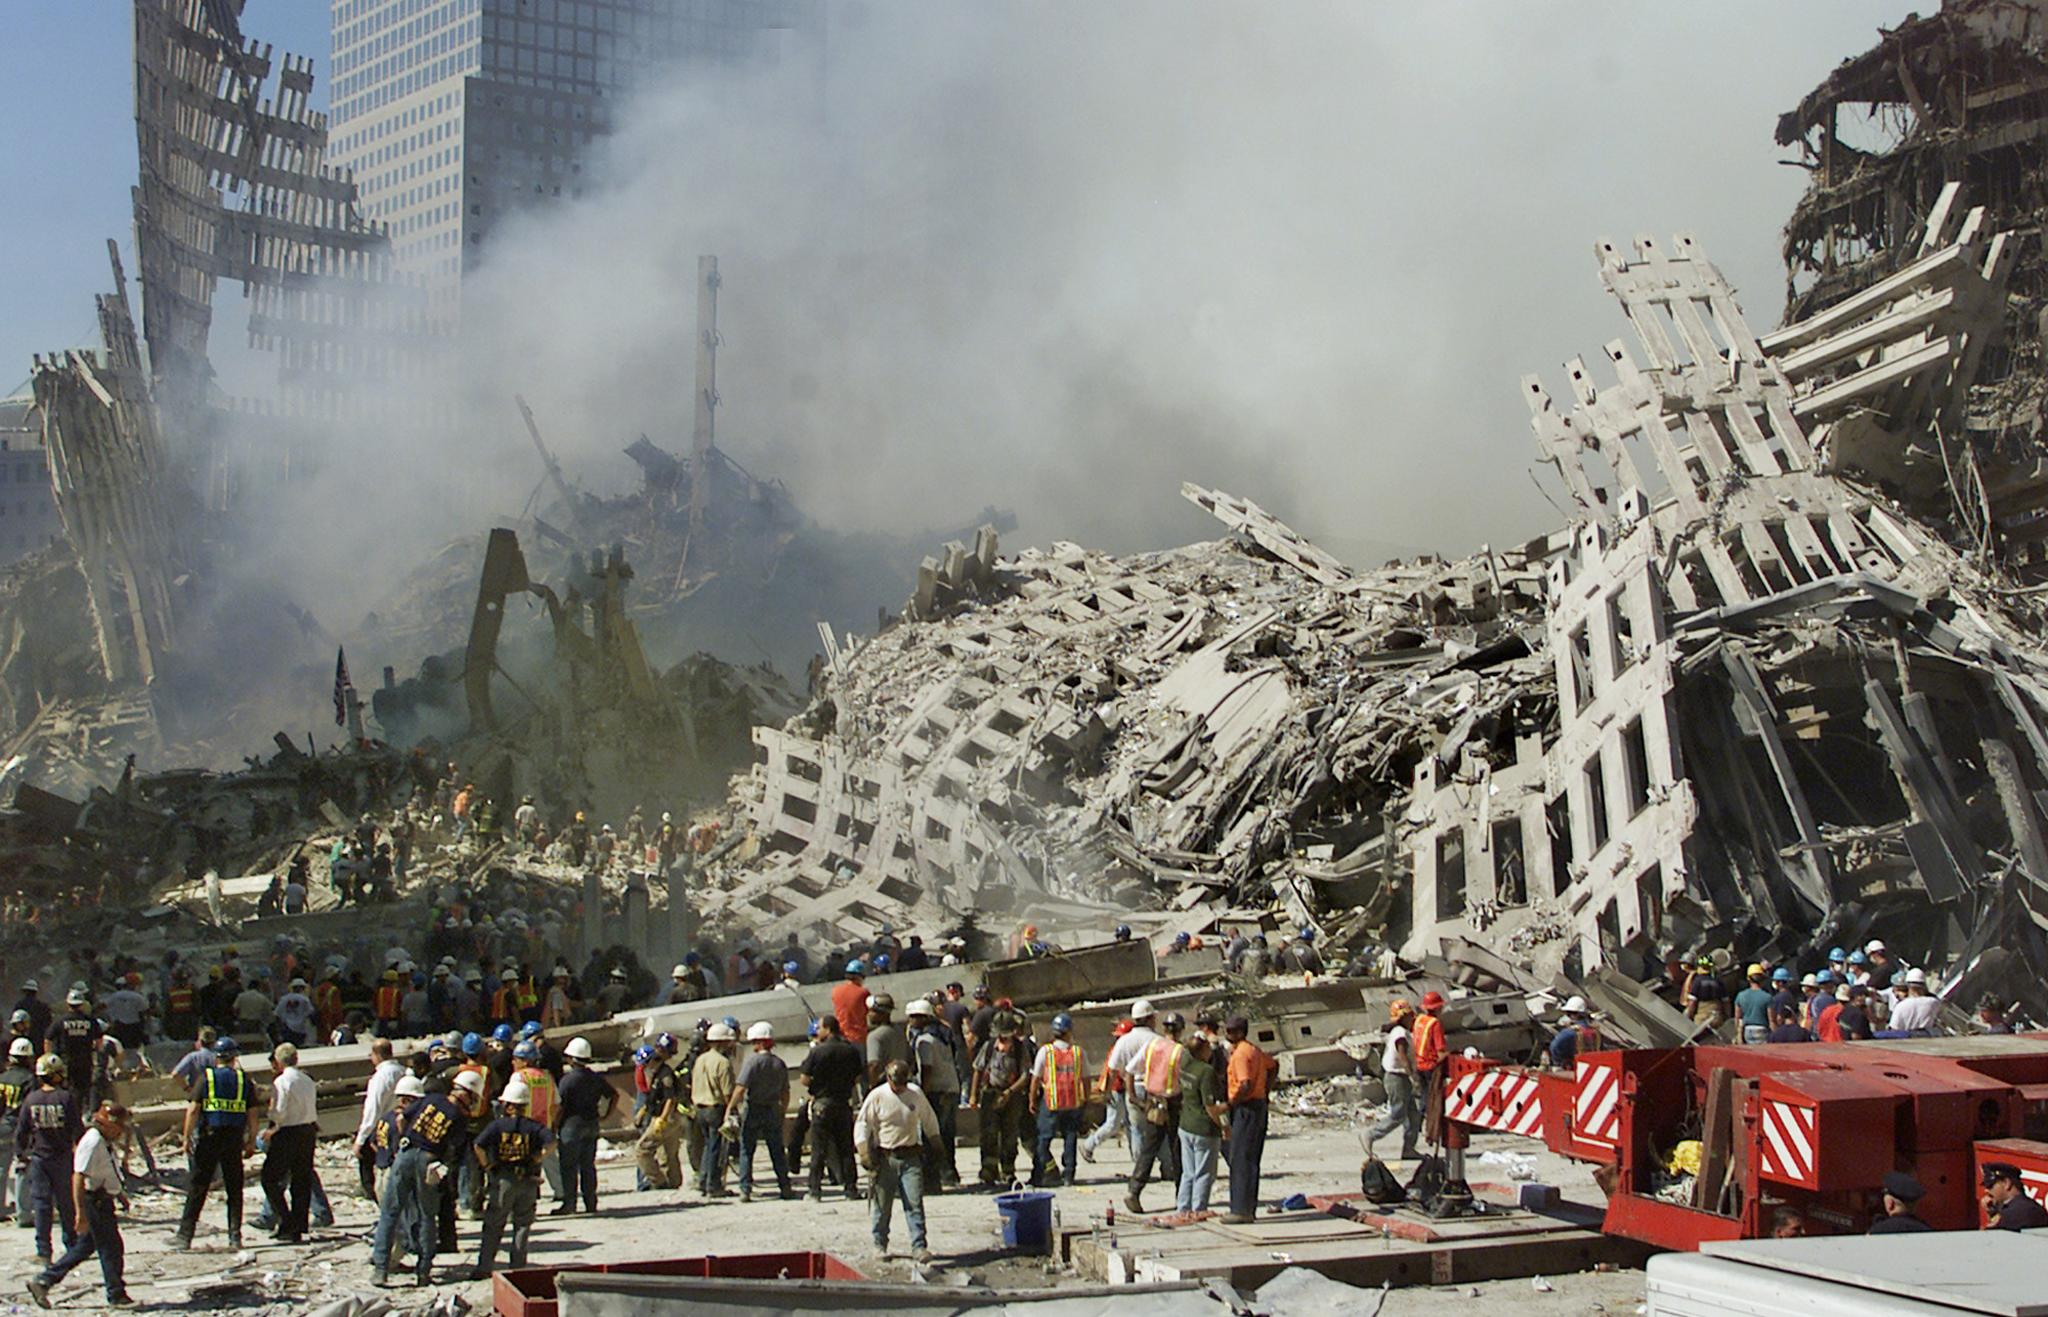 Rescue workers continue their search as smoke rises from the rubble of the World Trade Center 13 September 2001 in New York. The search for survivors and the recovery of the victims continues since the 11 September terrorist attack. (BETH A. KEISER/AFP/Getty Images)